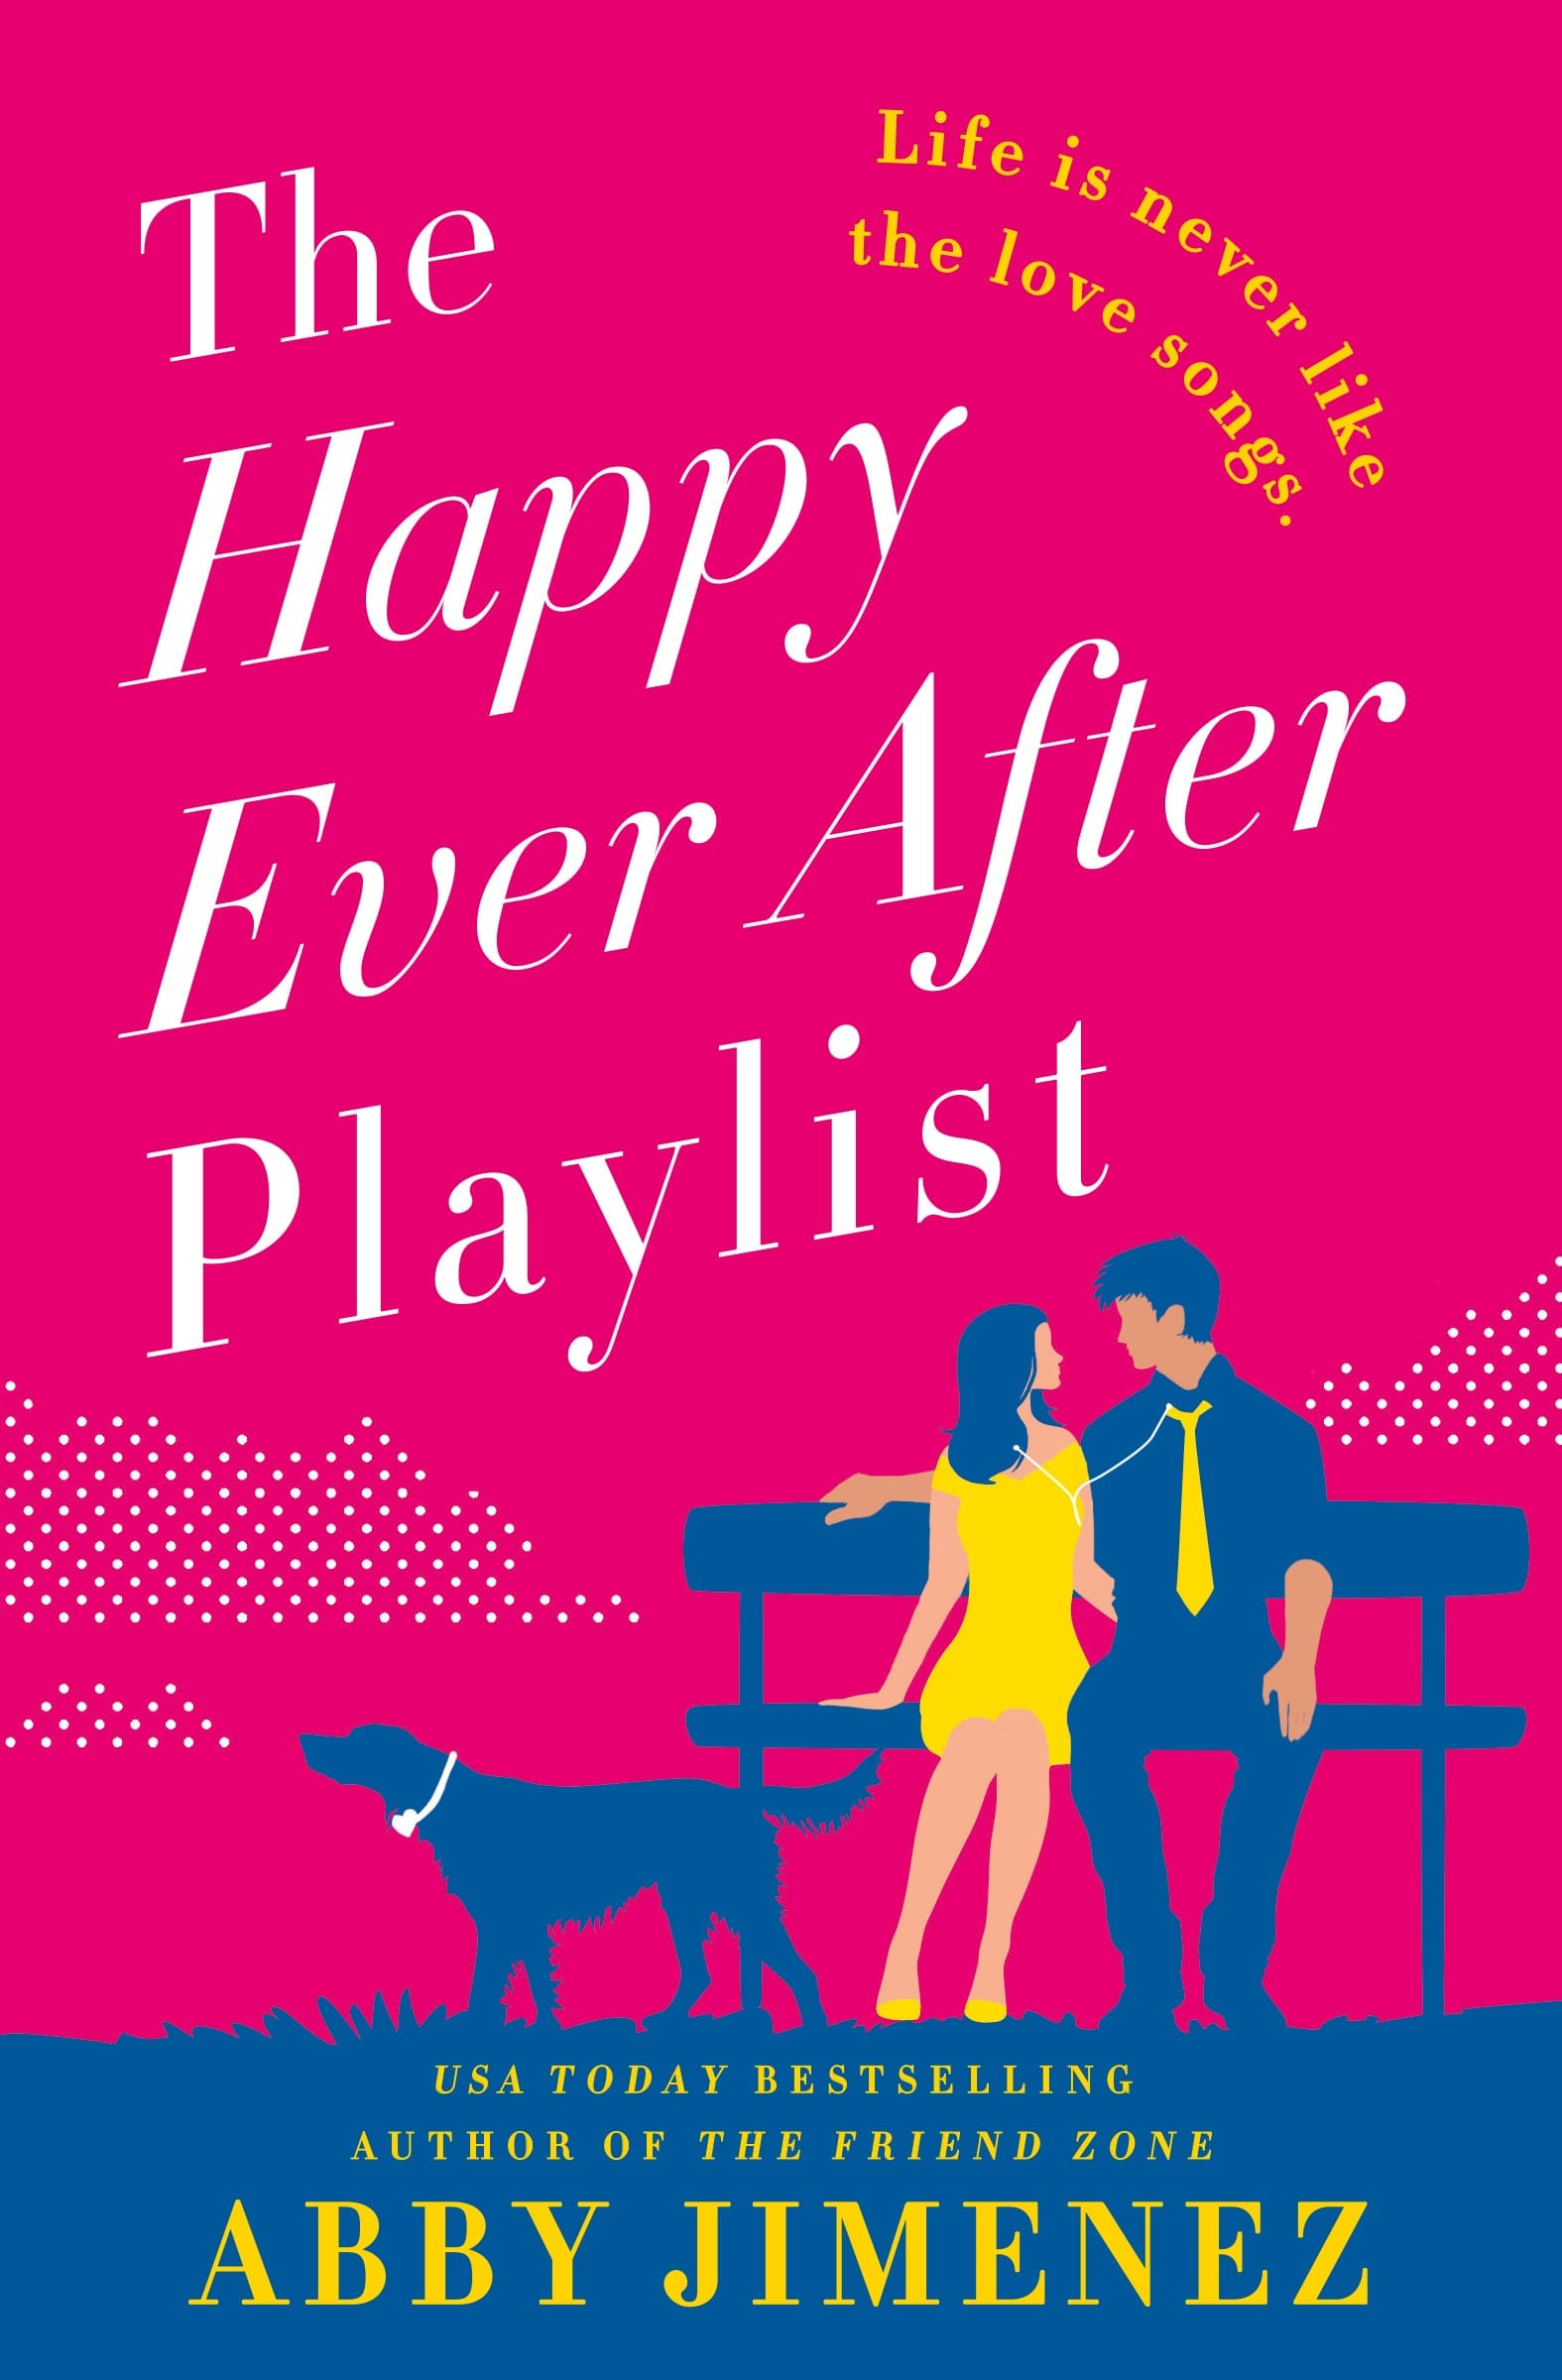 Summer Romances - The Happy Ever After Playlist